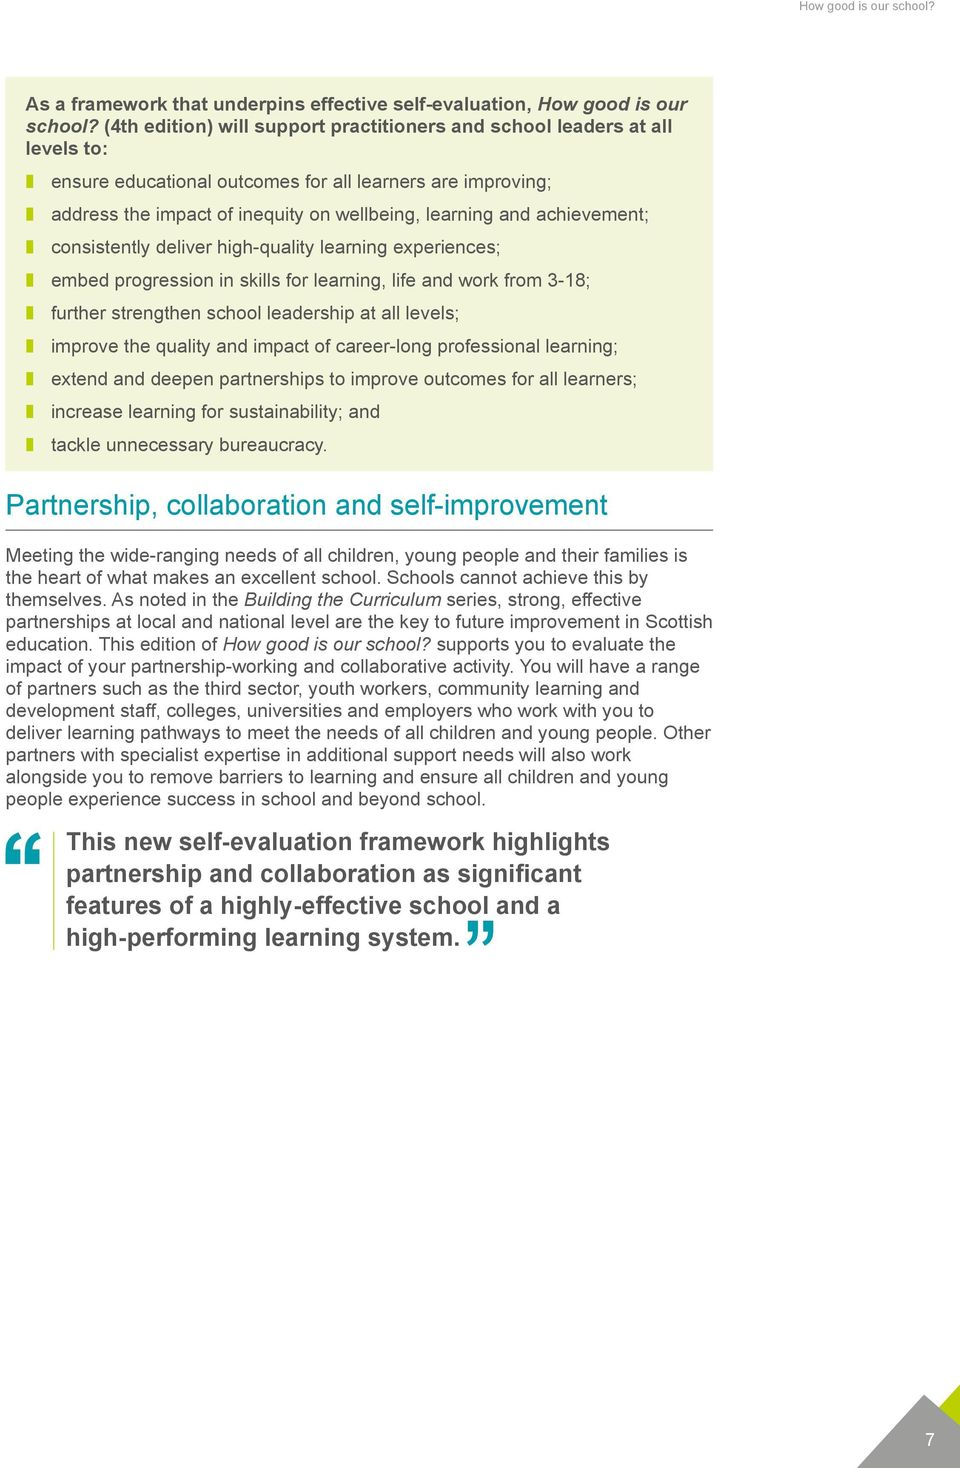 achievement; z consistently deliver high-quality learning experiences; z embed progression in skills for learning, life and work from 3-18; z further strengthen school leadership at all levels; z